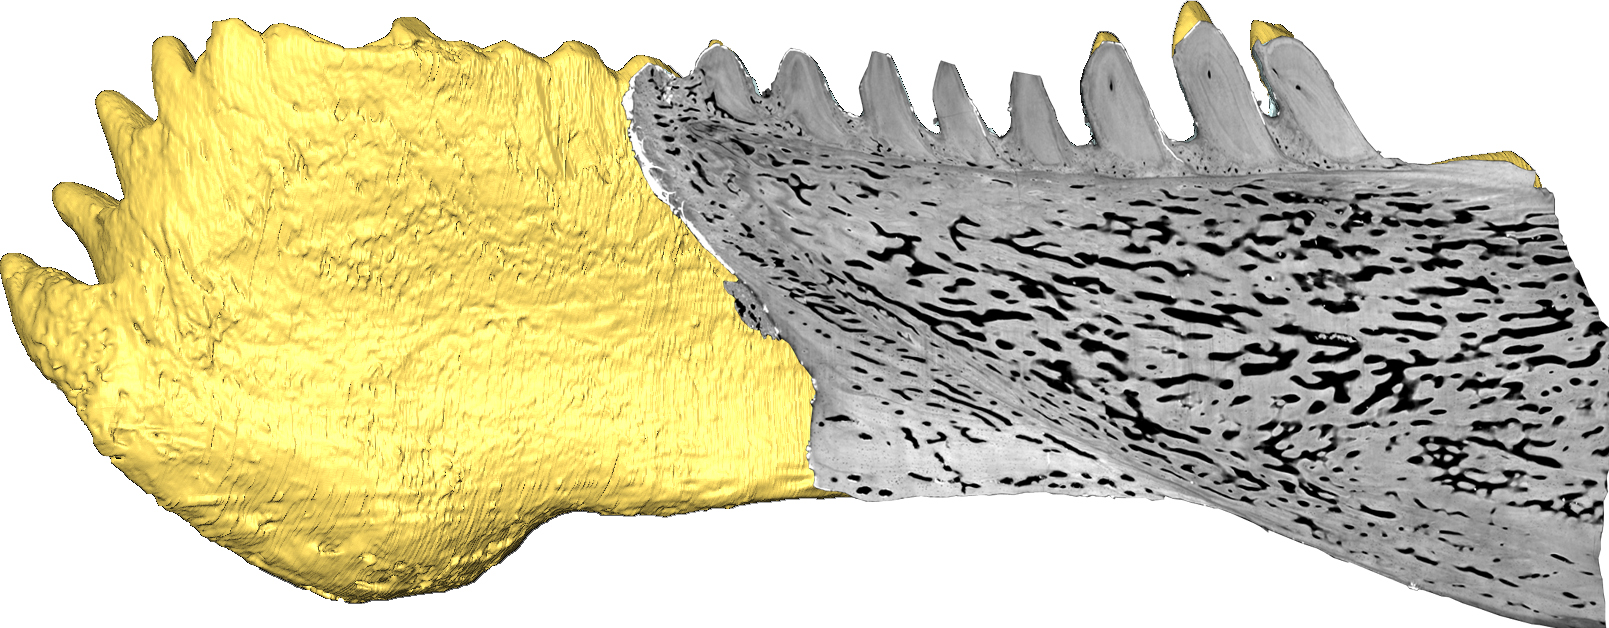 Virtual section through the jaw of Compagopiscis (Martin Rücklin, University of Bristol). <br>All images are for single use only to illustrate this press release and are not to be archived.  Please credit the copyright holder.